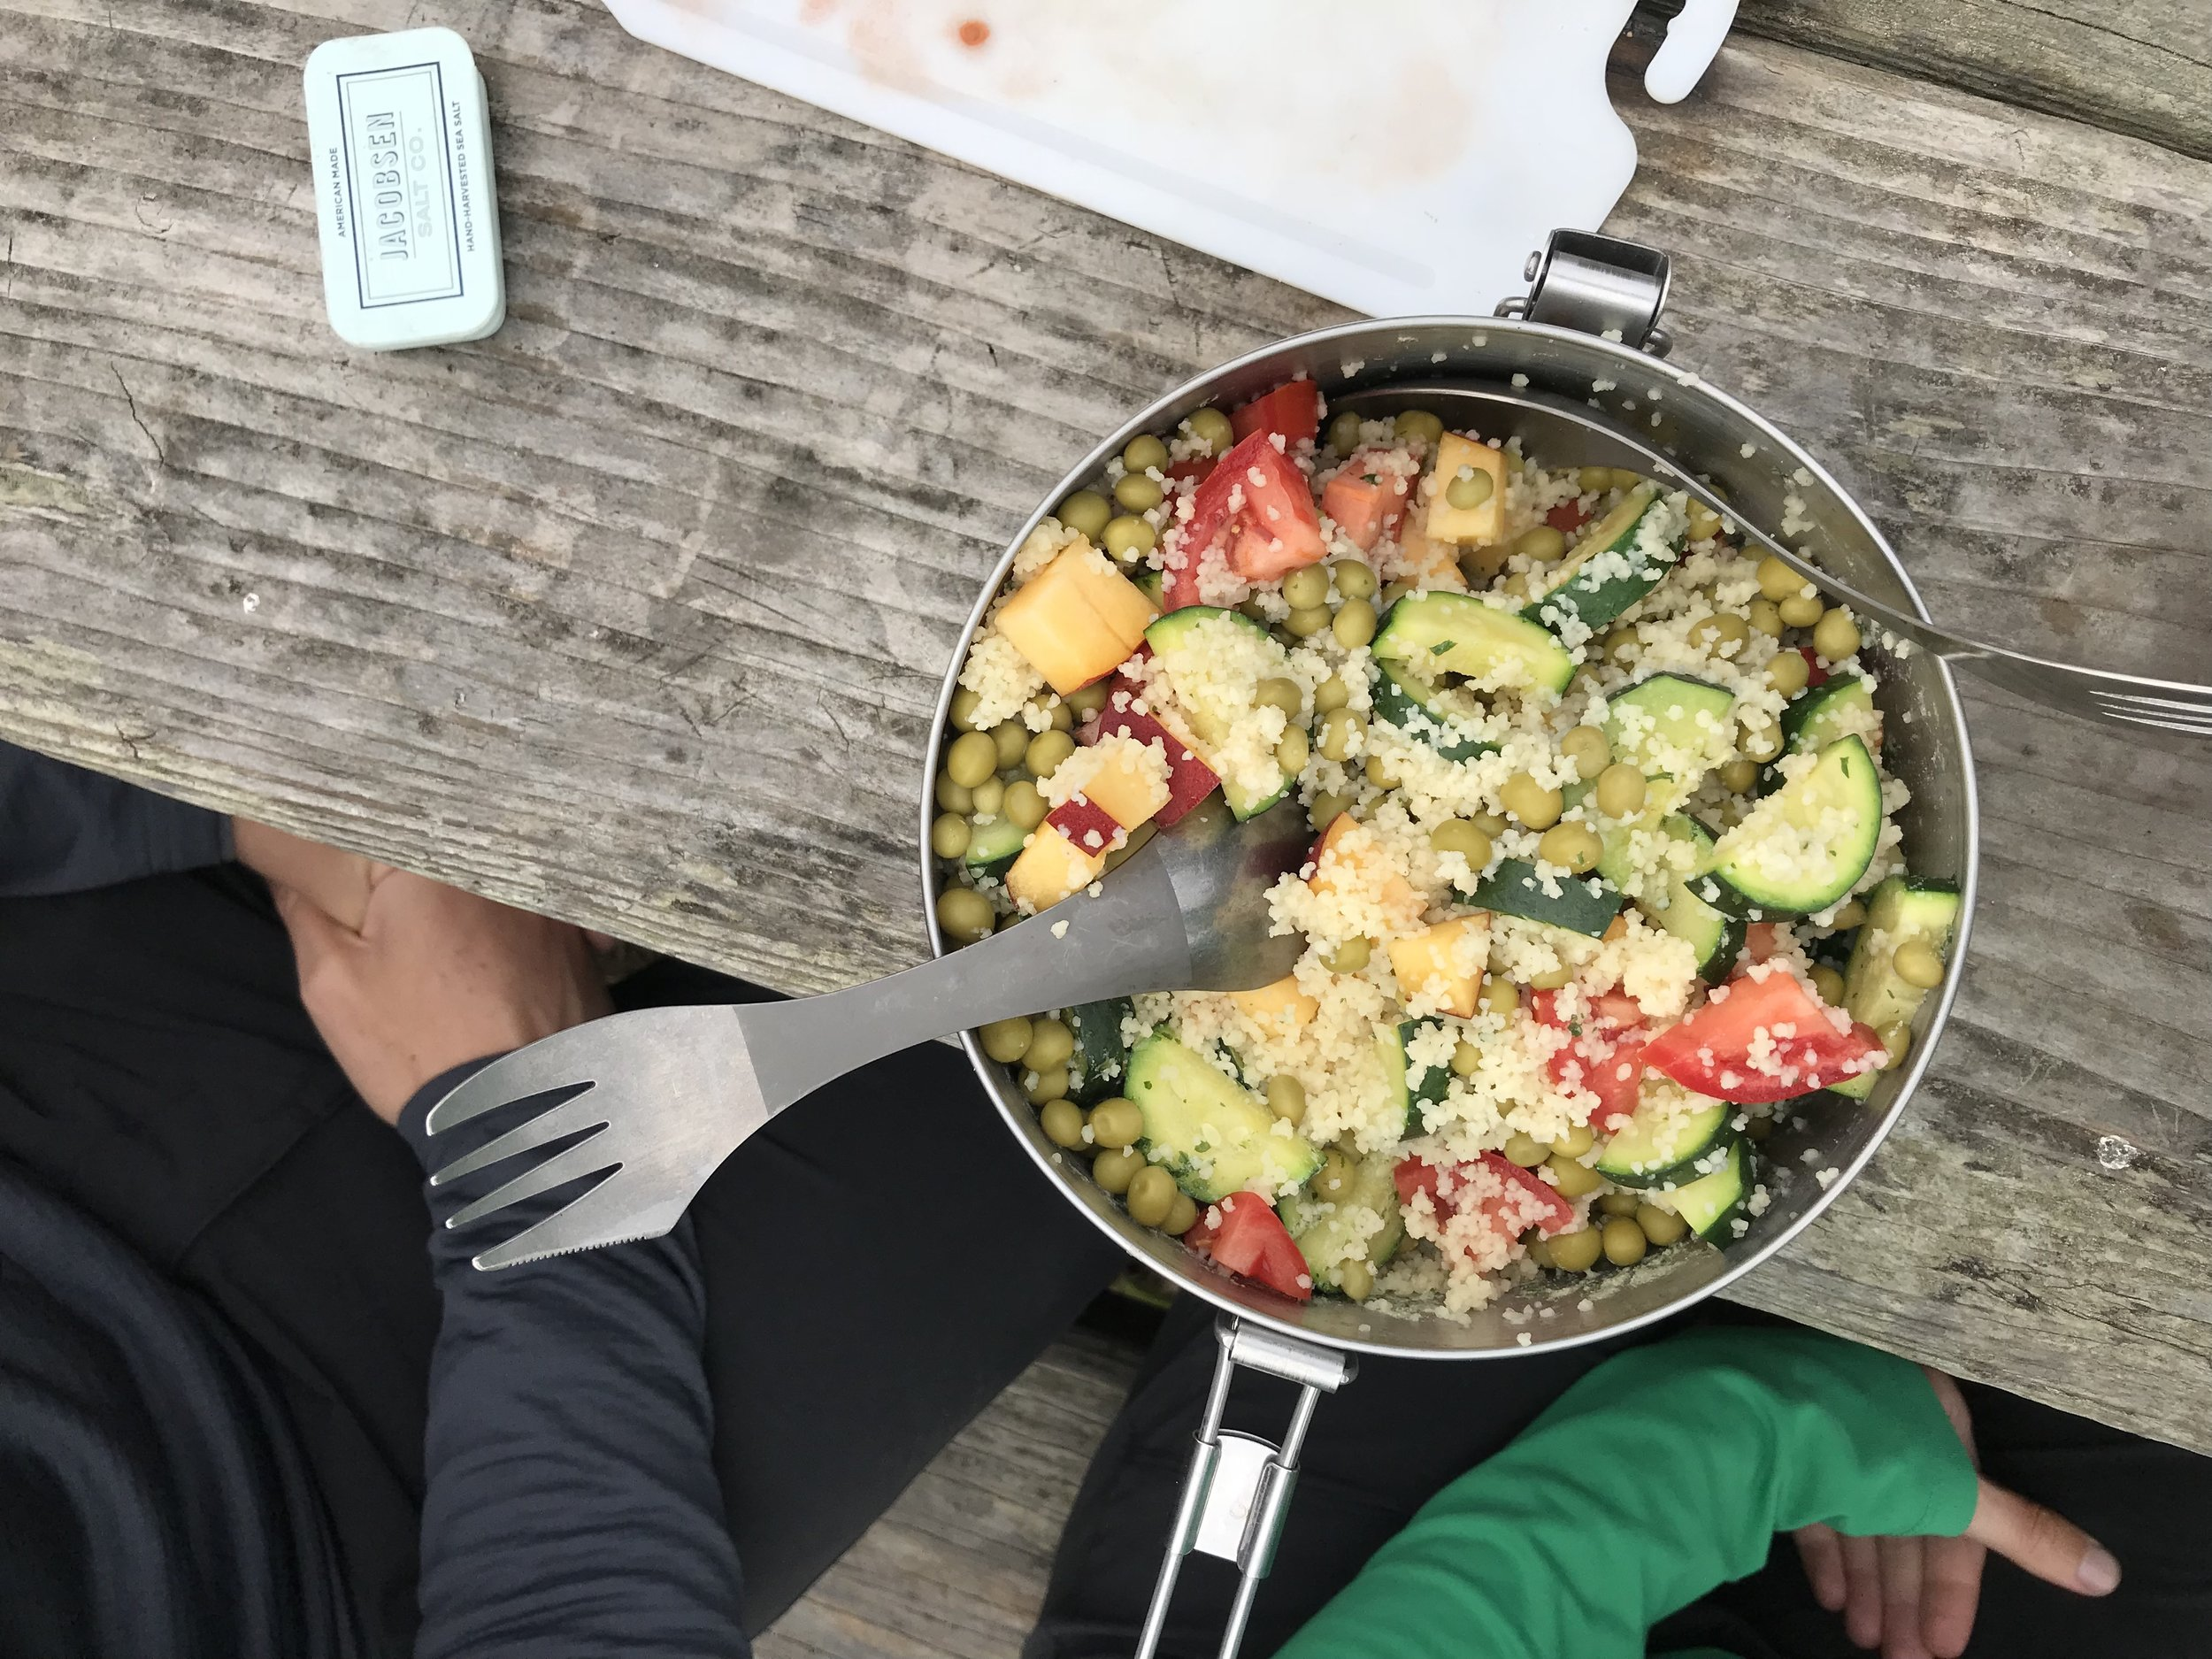 One of our camp meal specialities: couscous and veggies. Lots of carbs and quick to cook. Also, we have bowls, but we never use them—we have a communal pot.